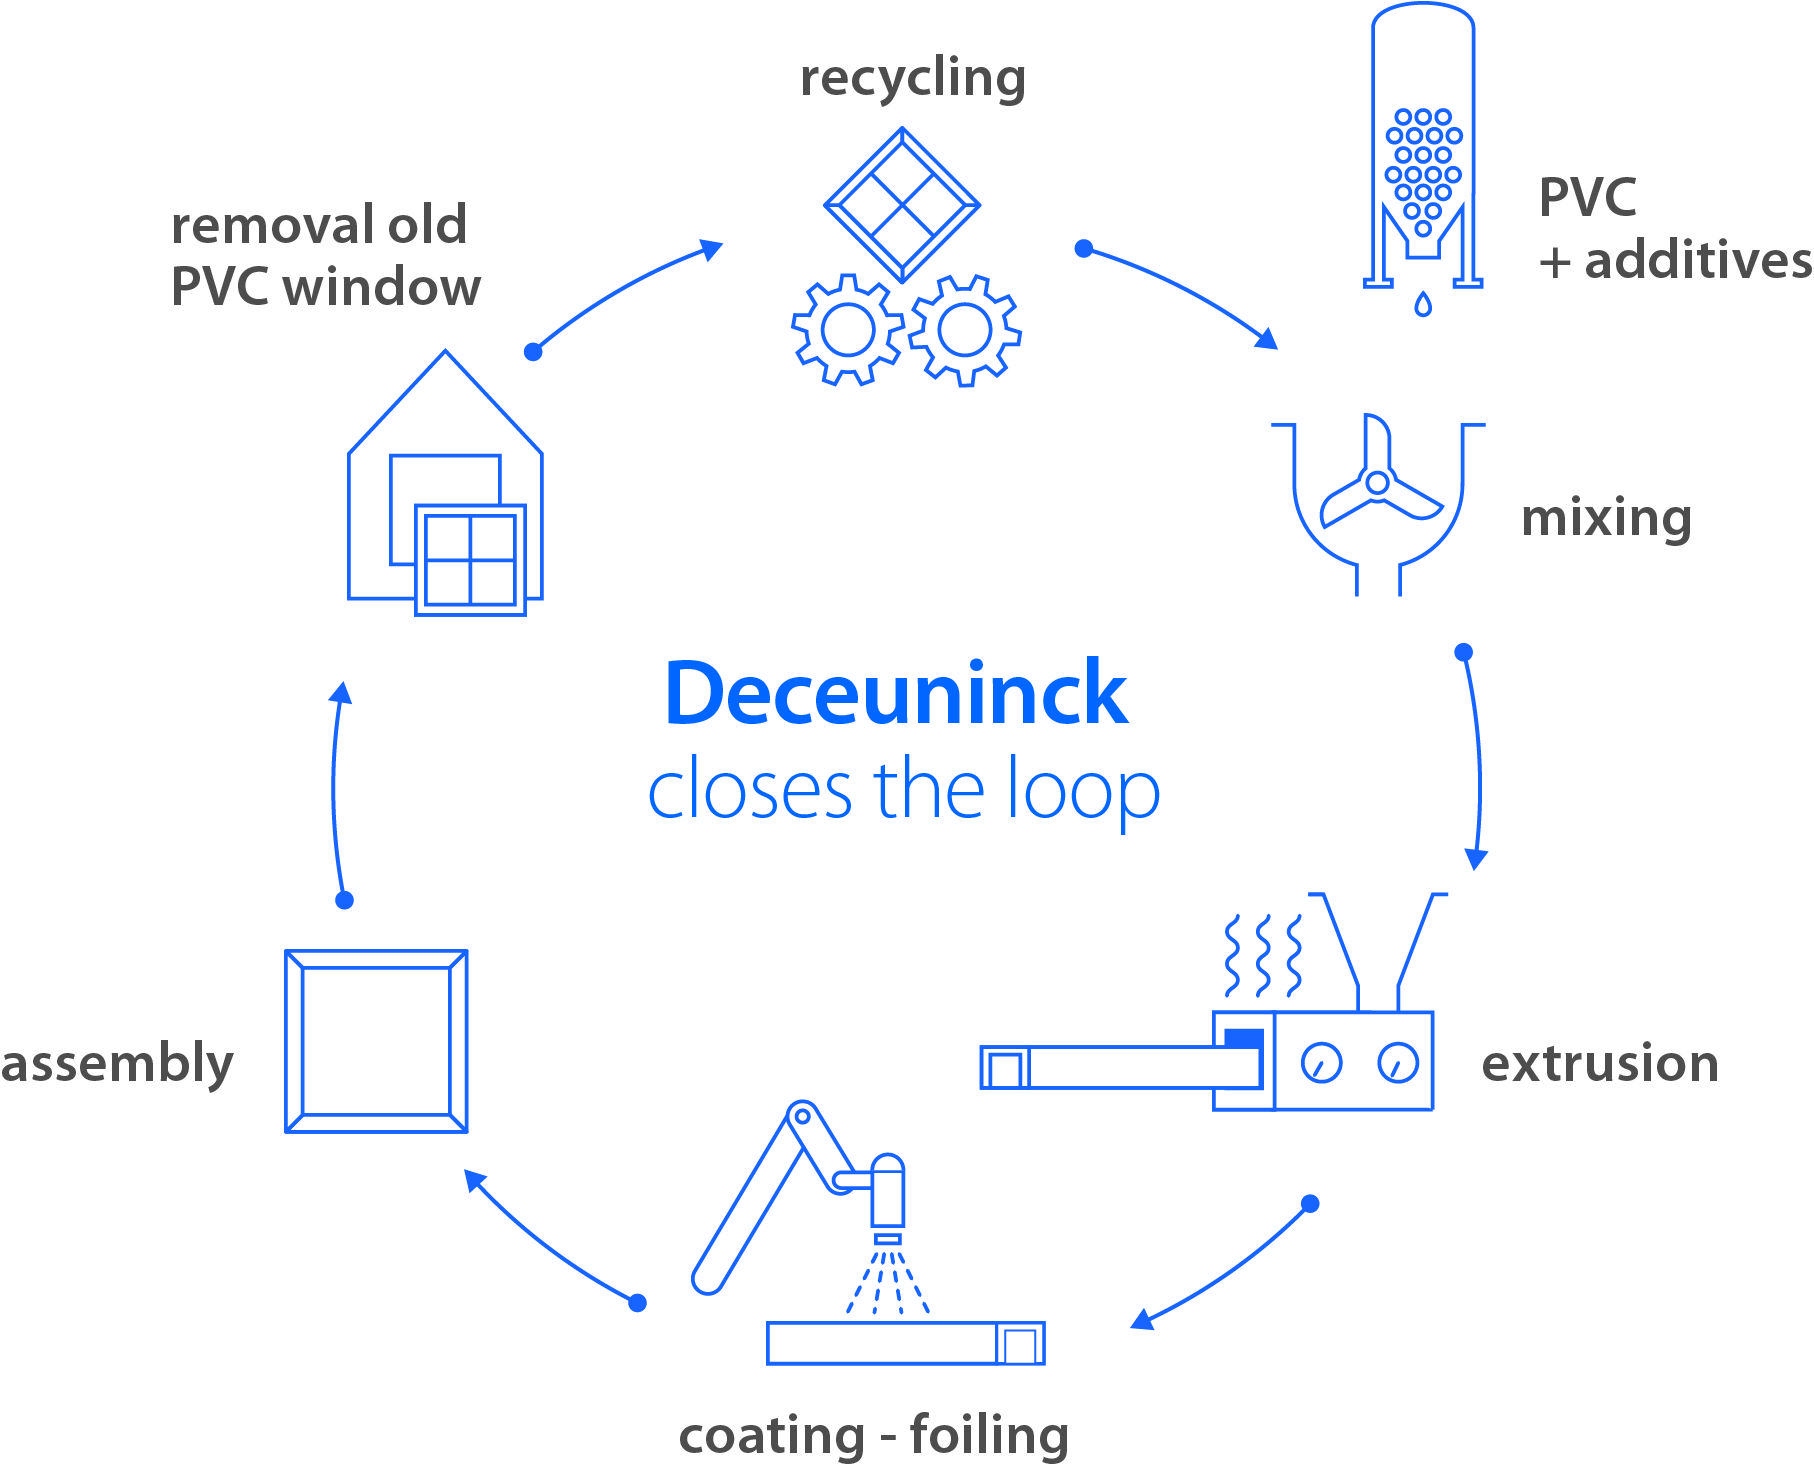 Deceuninck Has Quadrupled Its Recycling Capacity To 45 000 Tonnes